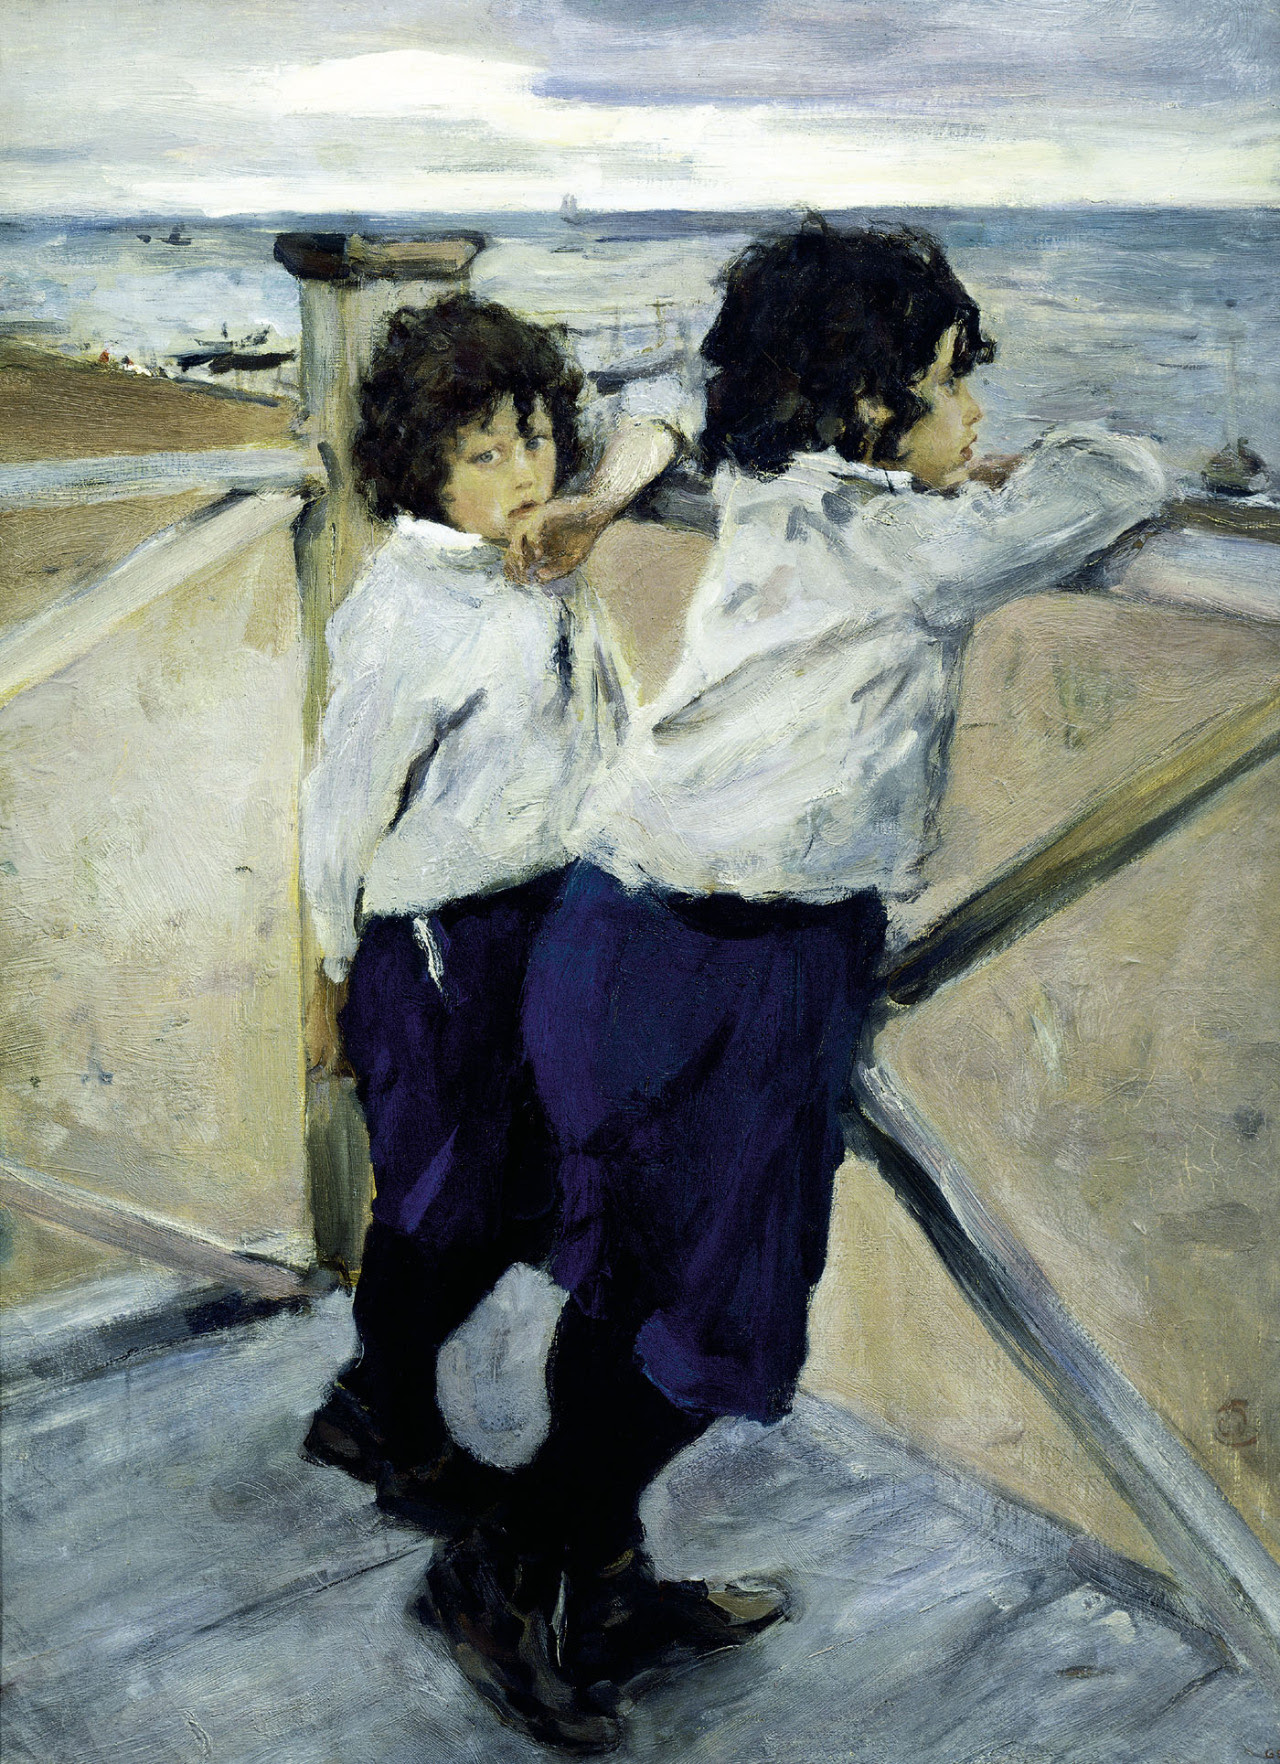 yourtrueface: painting by Valentin Serov